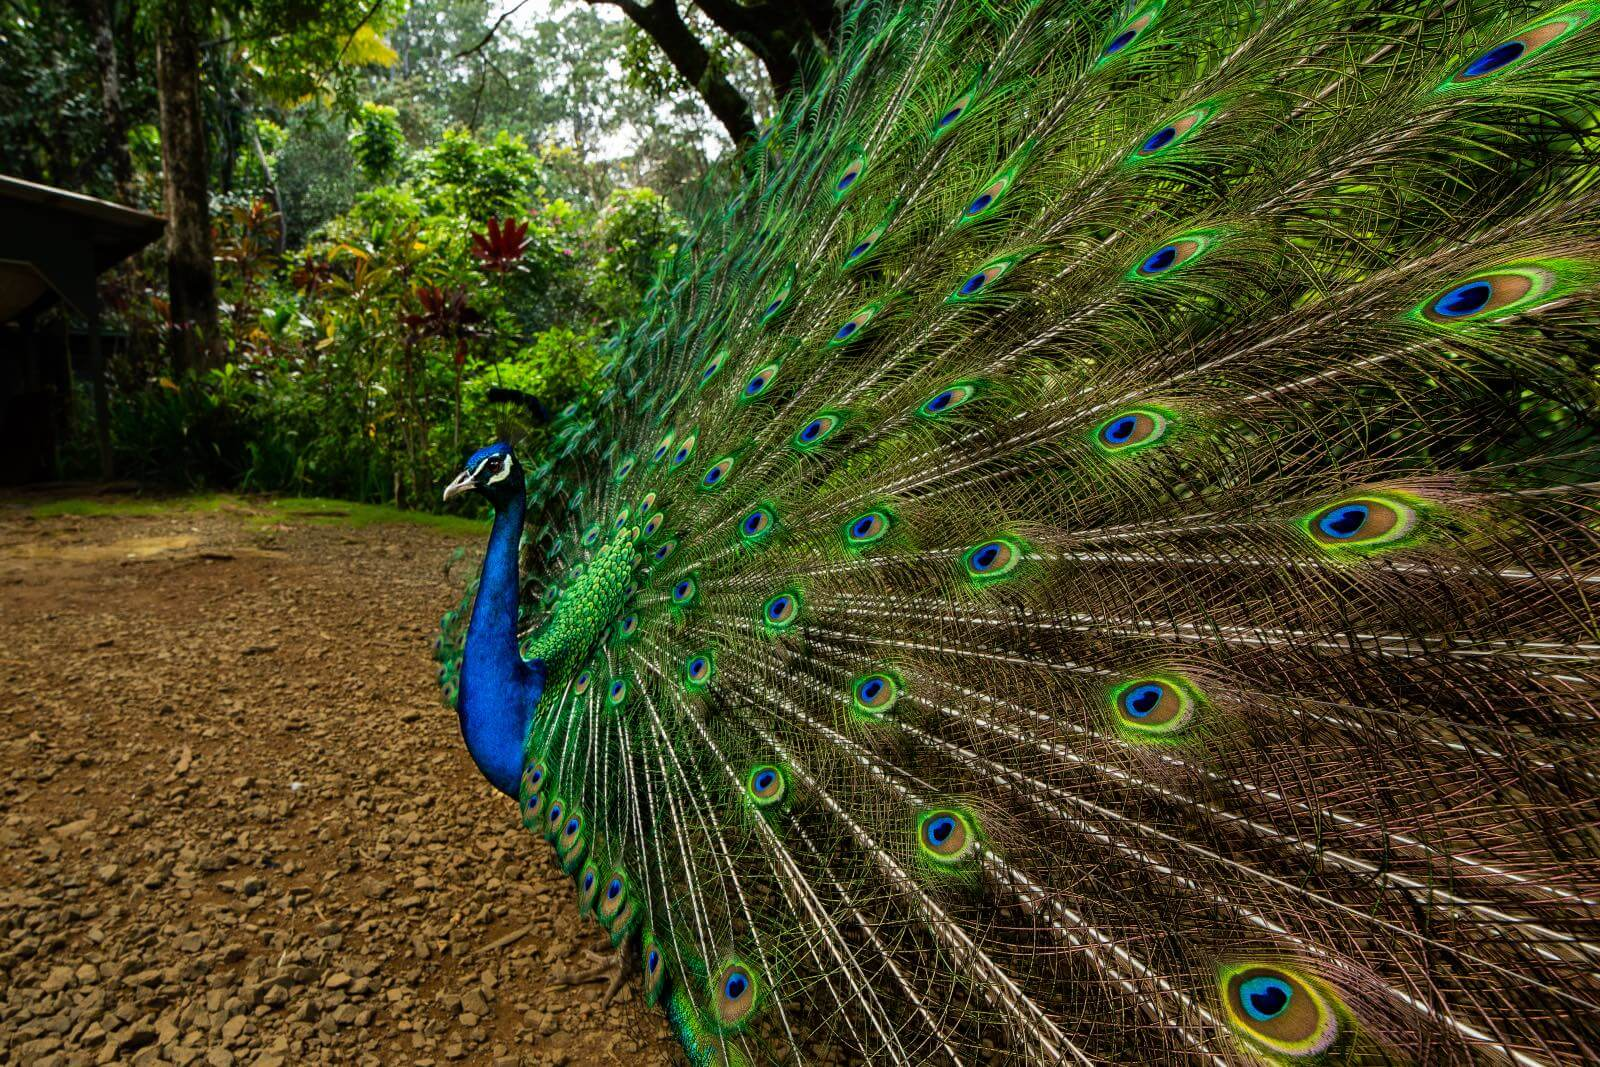 a peacock at the garden of eden on the road to Hana